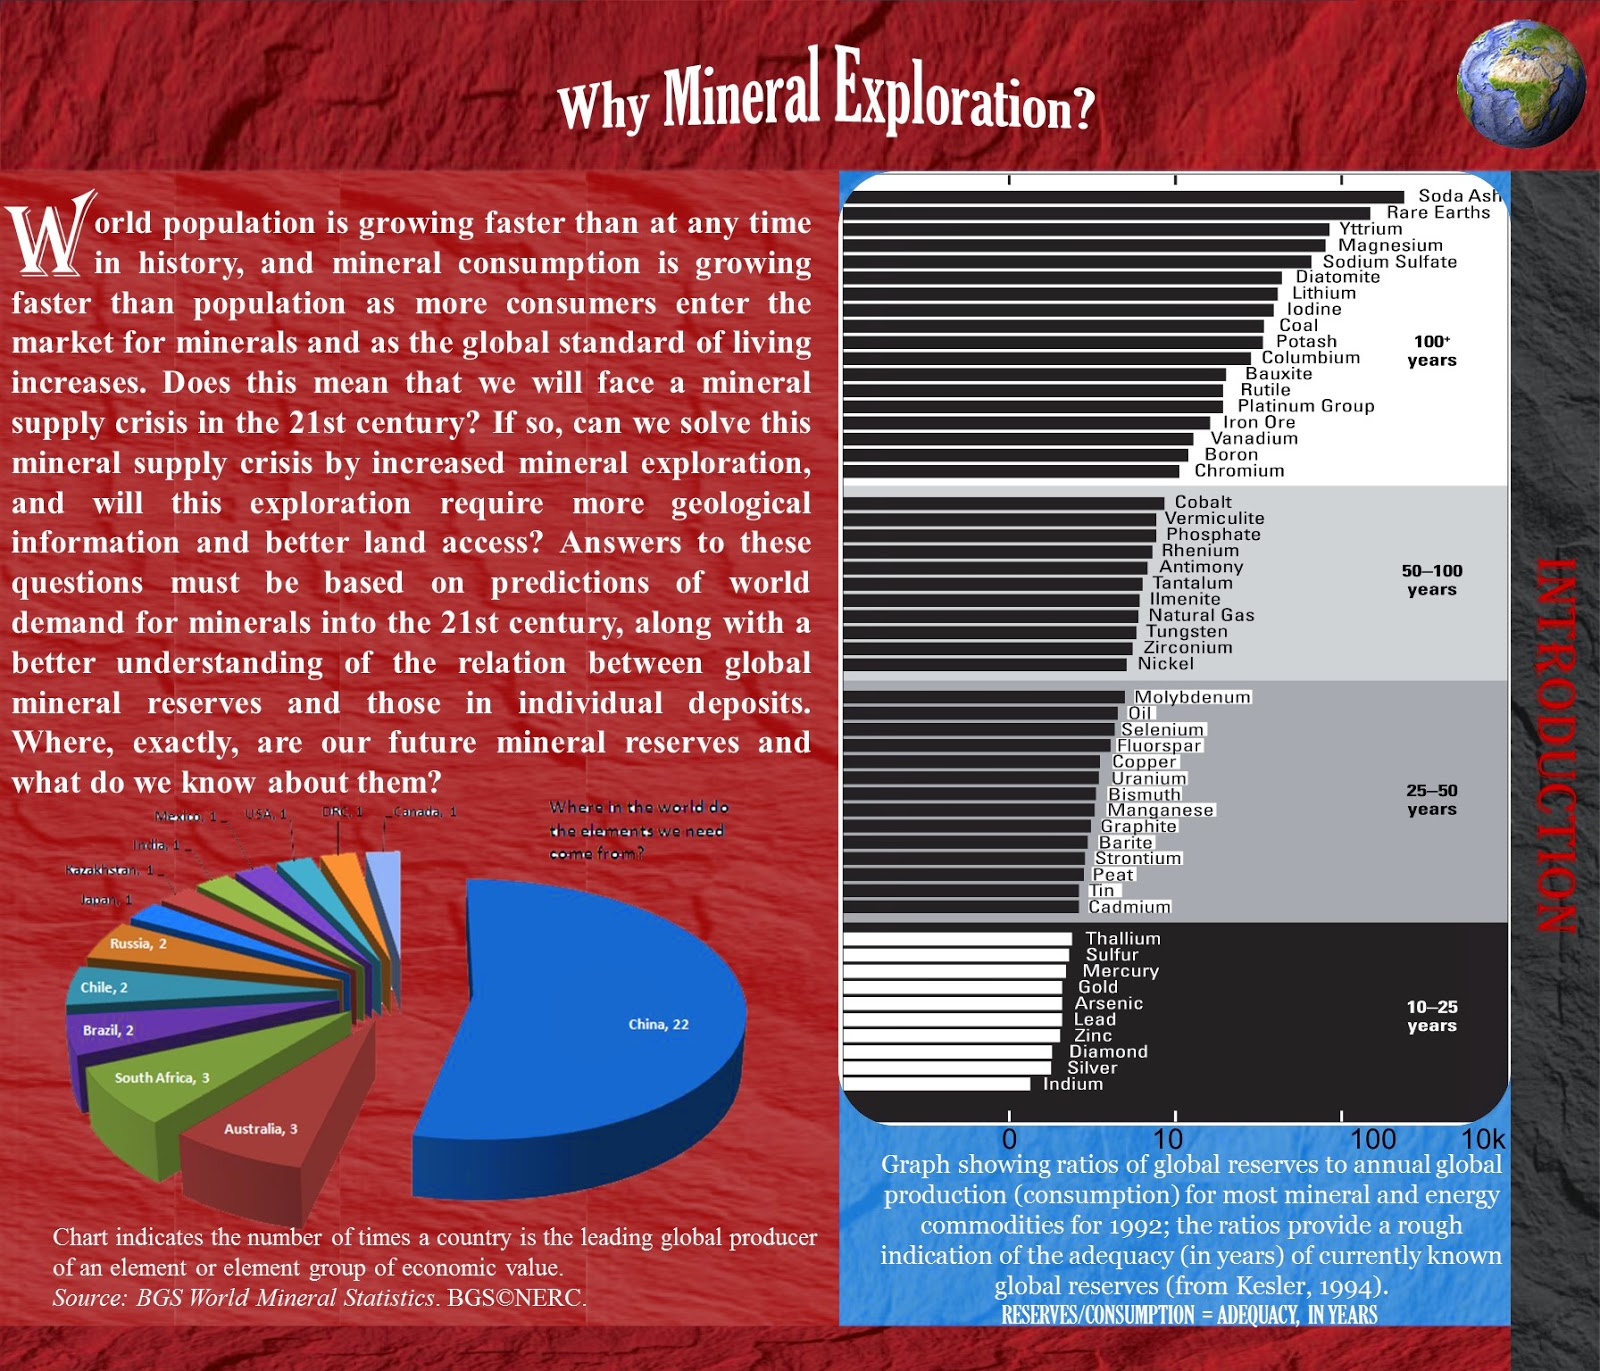 Why Mineral Exploration?